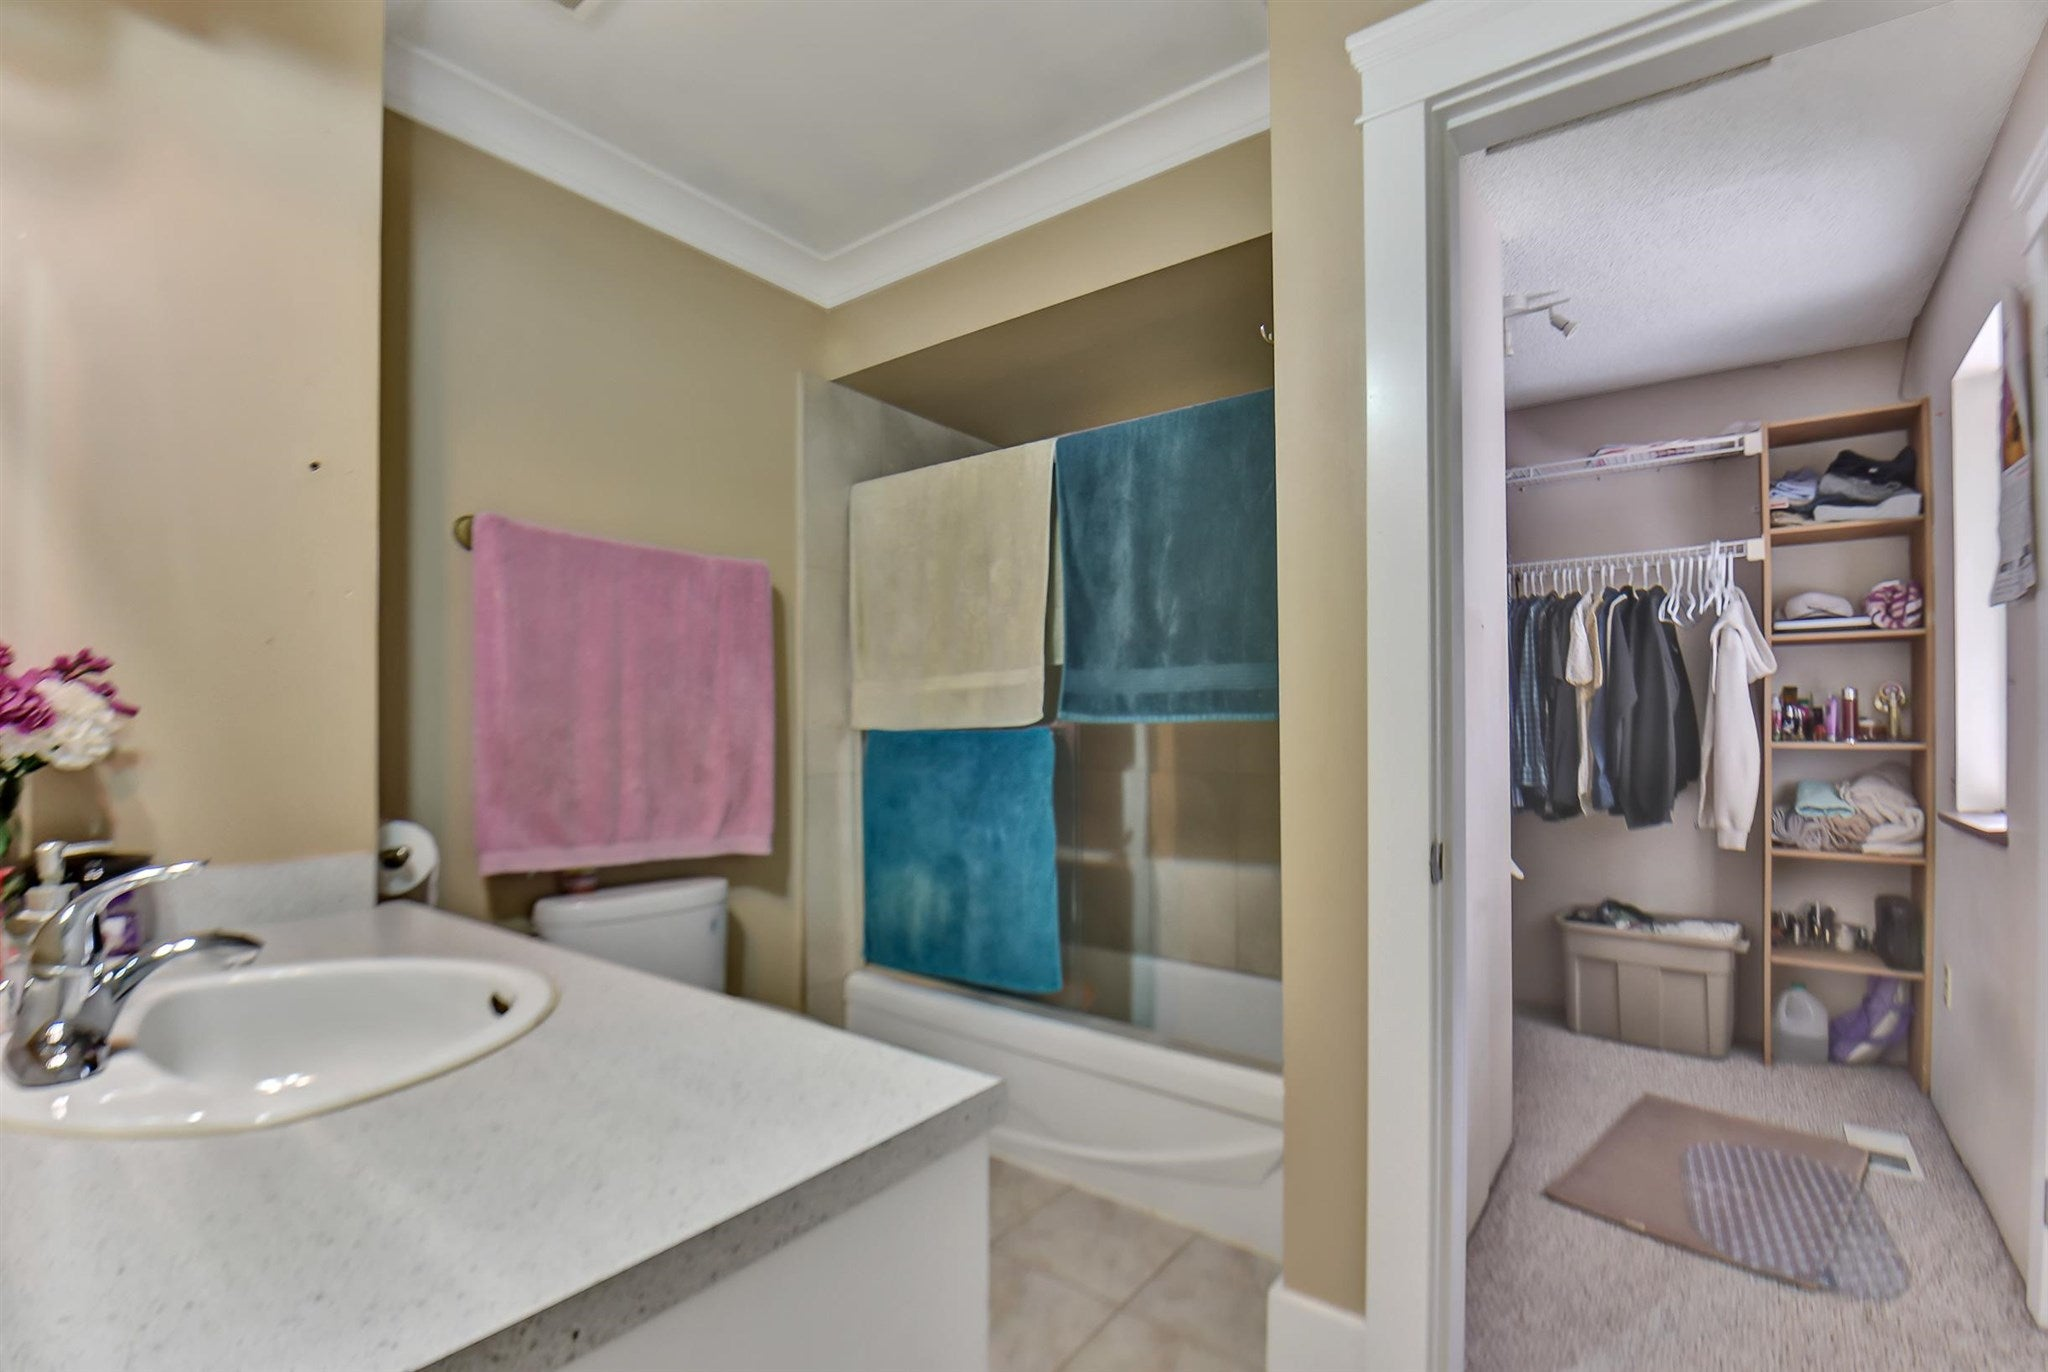 31 12045 93A AVENUE - Queen Mary Park Surrey Townhouse for sale, 4 Bedrooms (R2603608) - #18